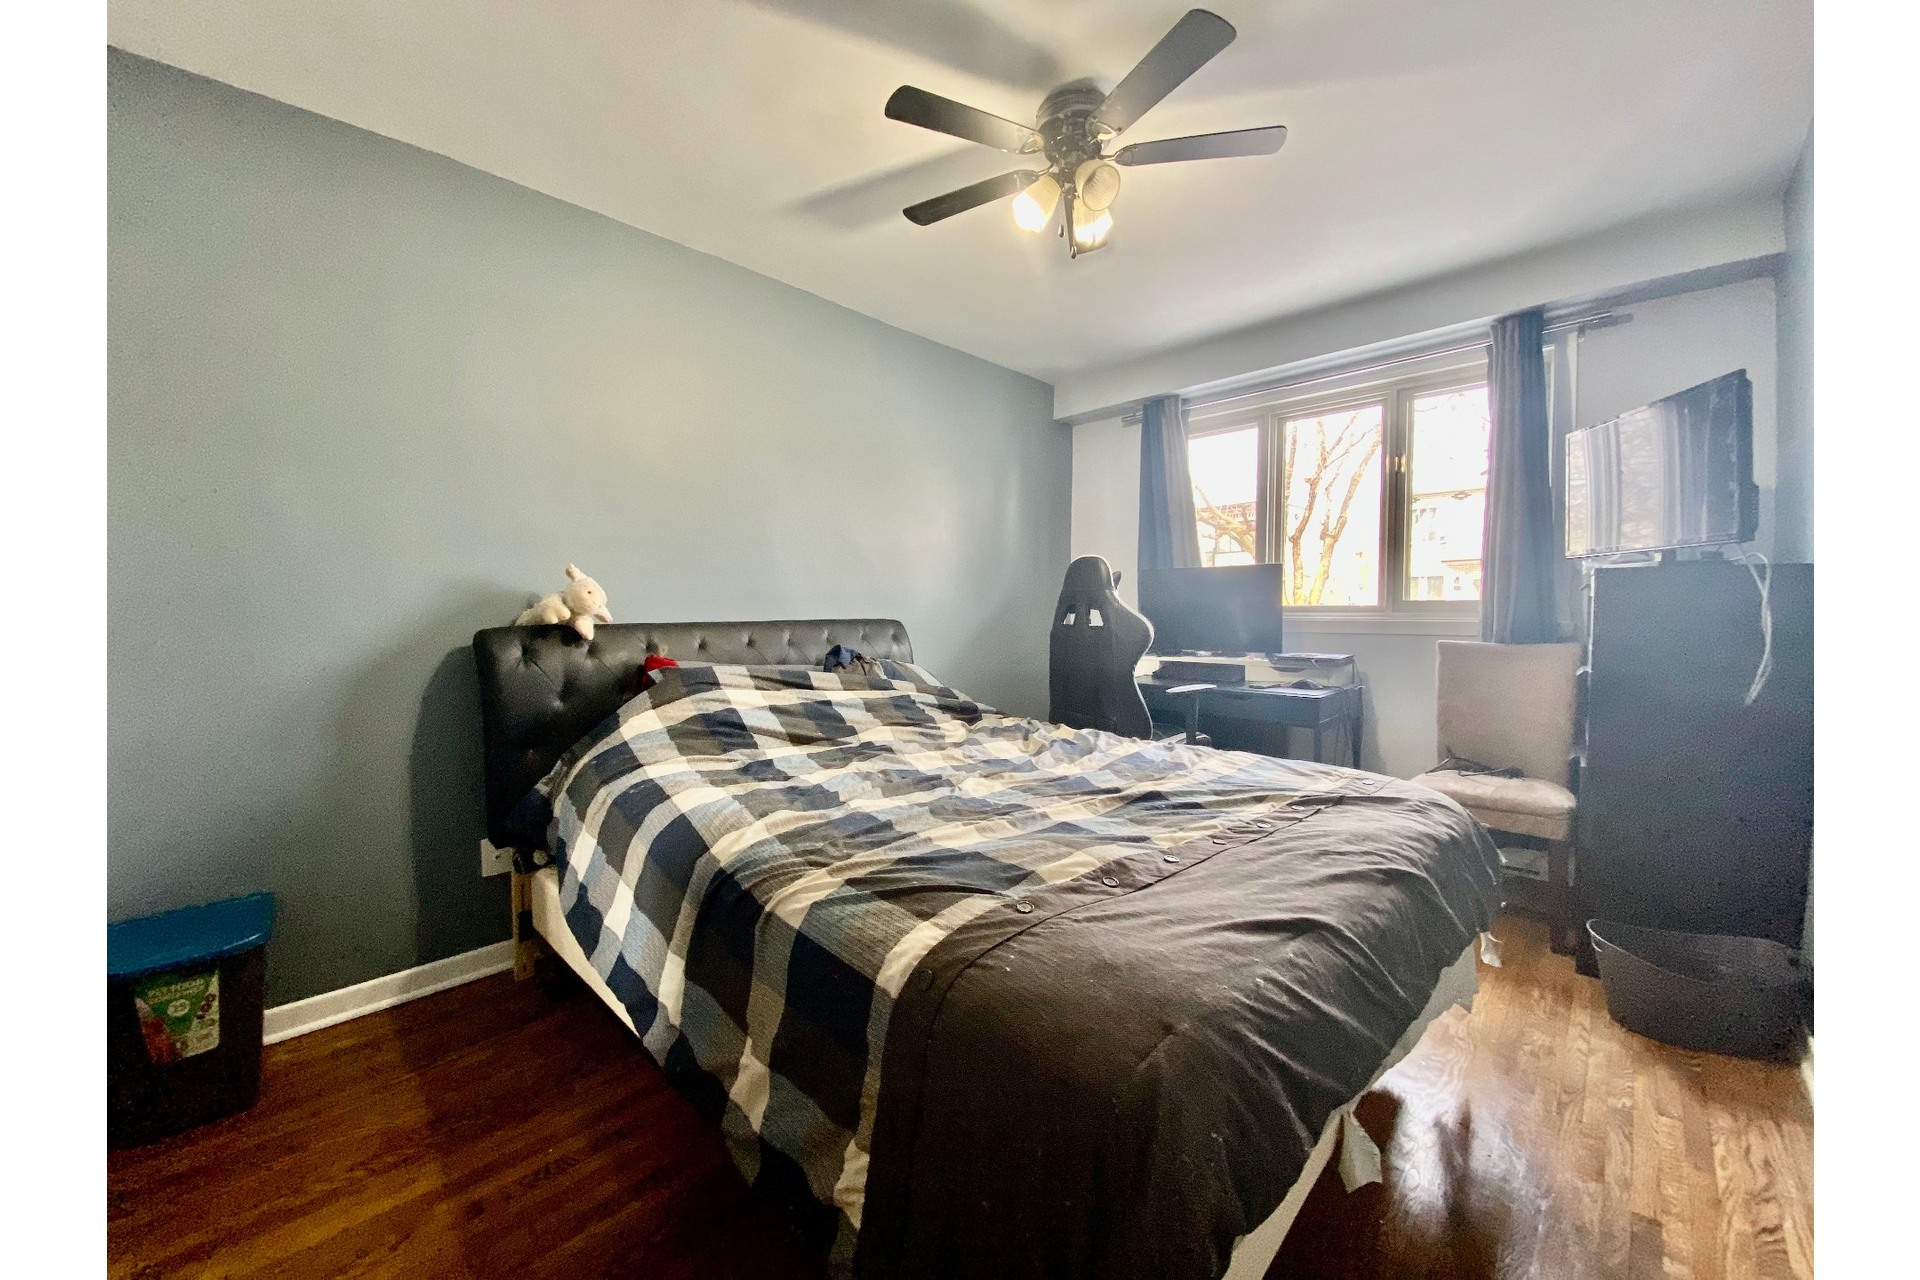 Triplex For sale LaSalle Montréal  - 5 rooms